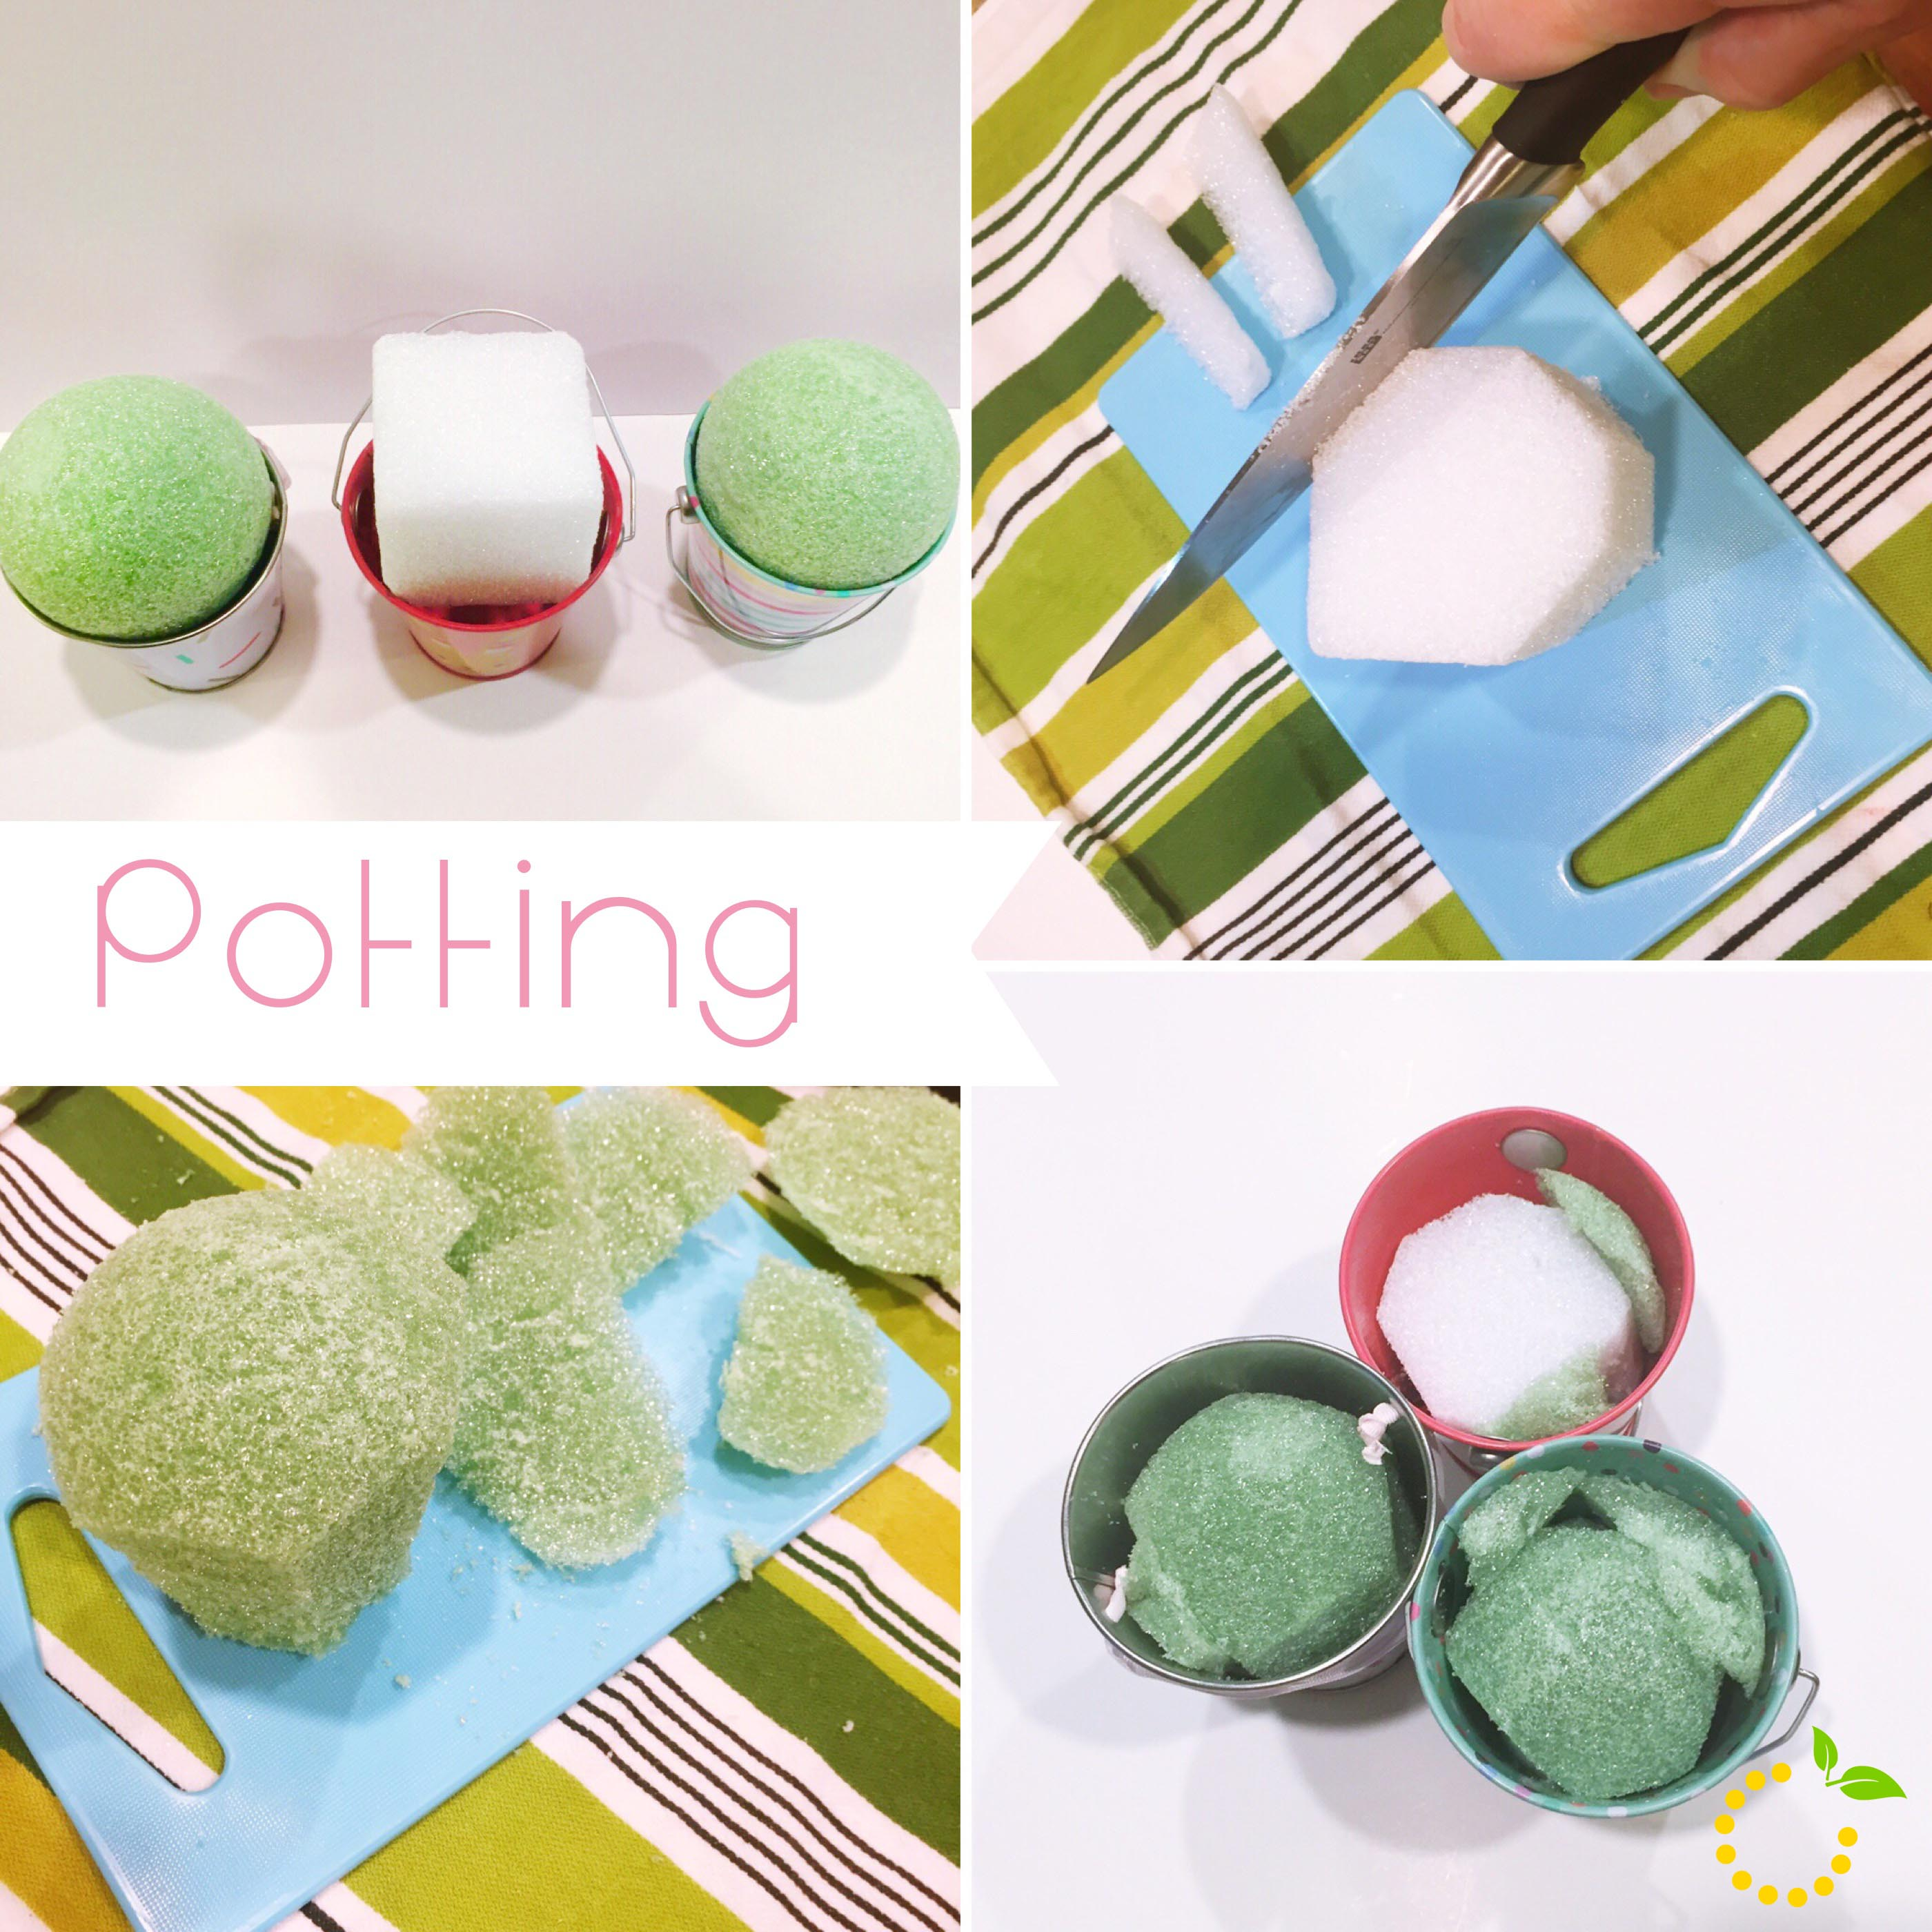 Cake Pop Potting sweetlemonmade.com